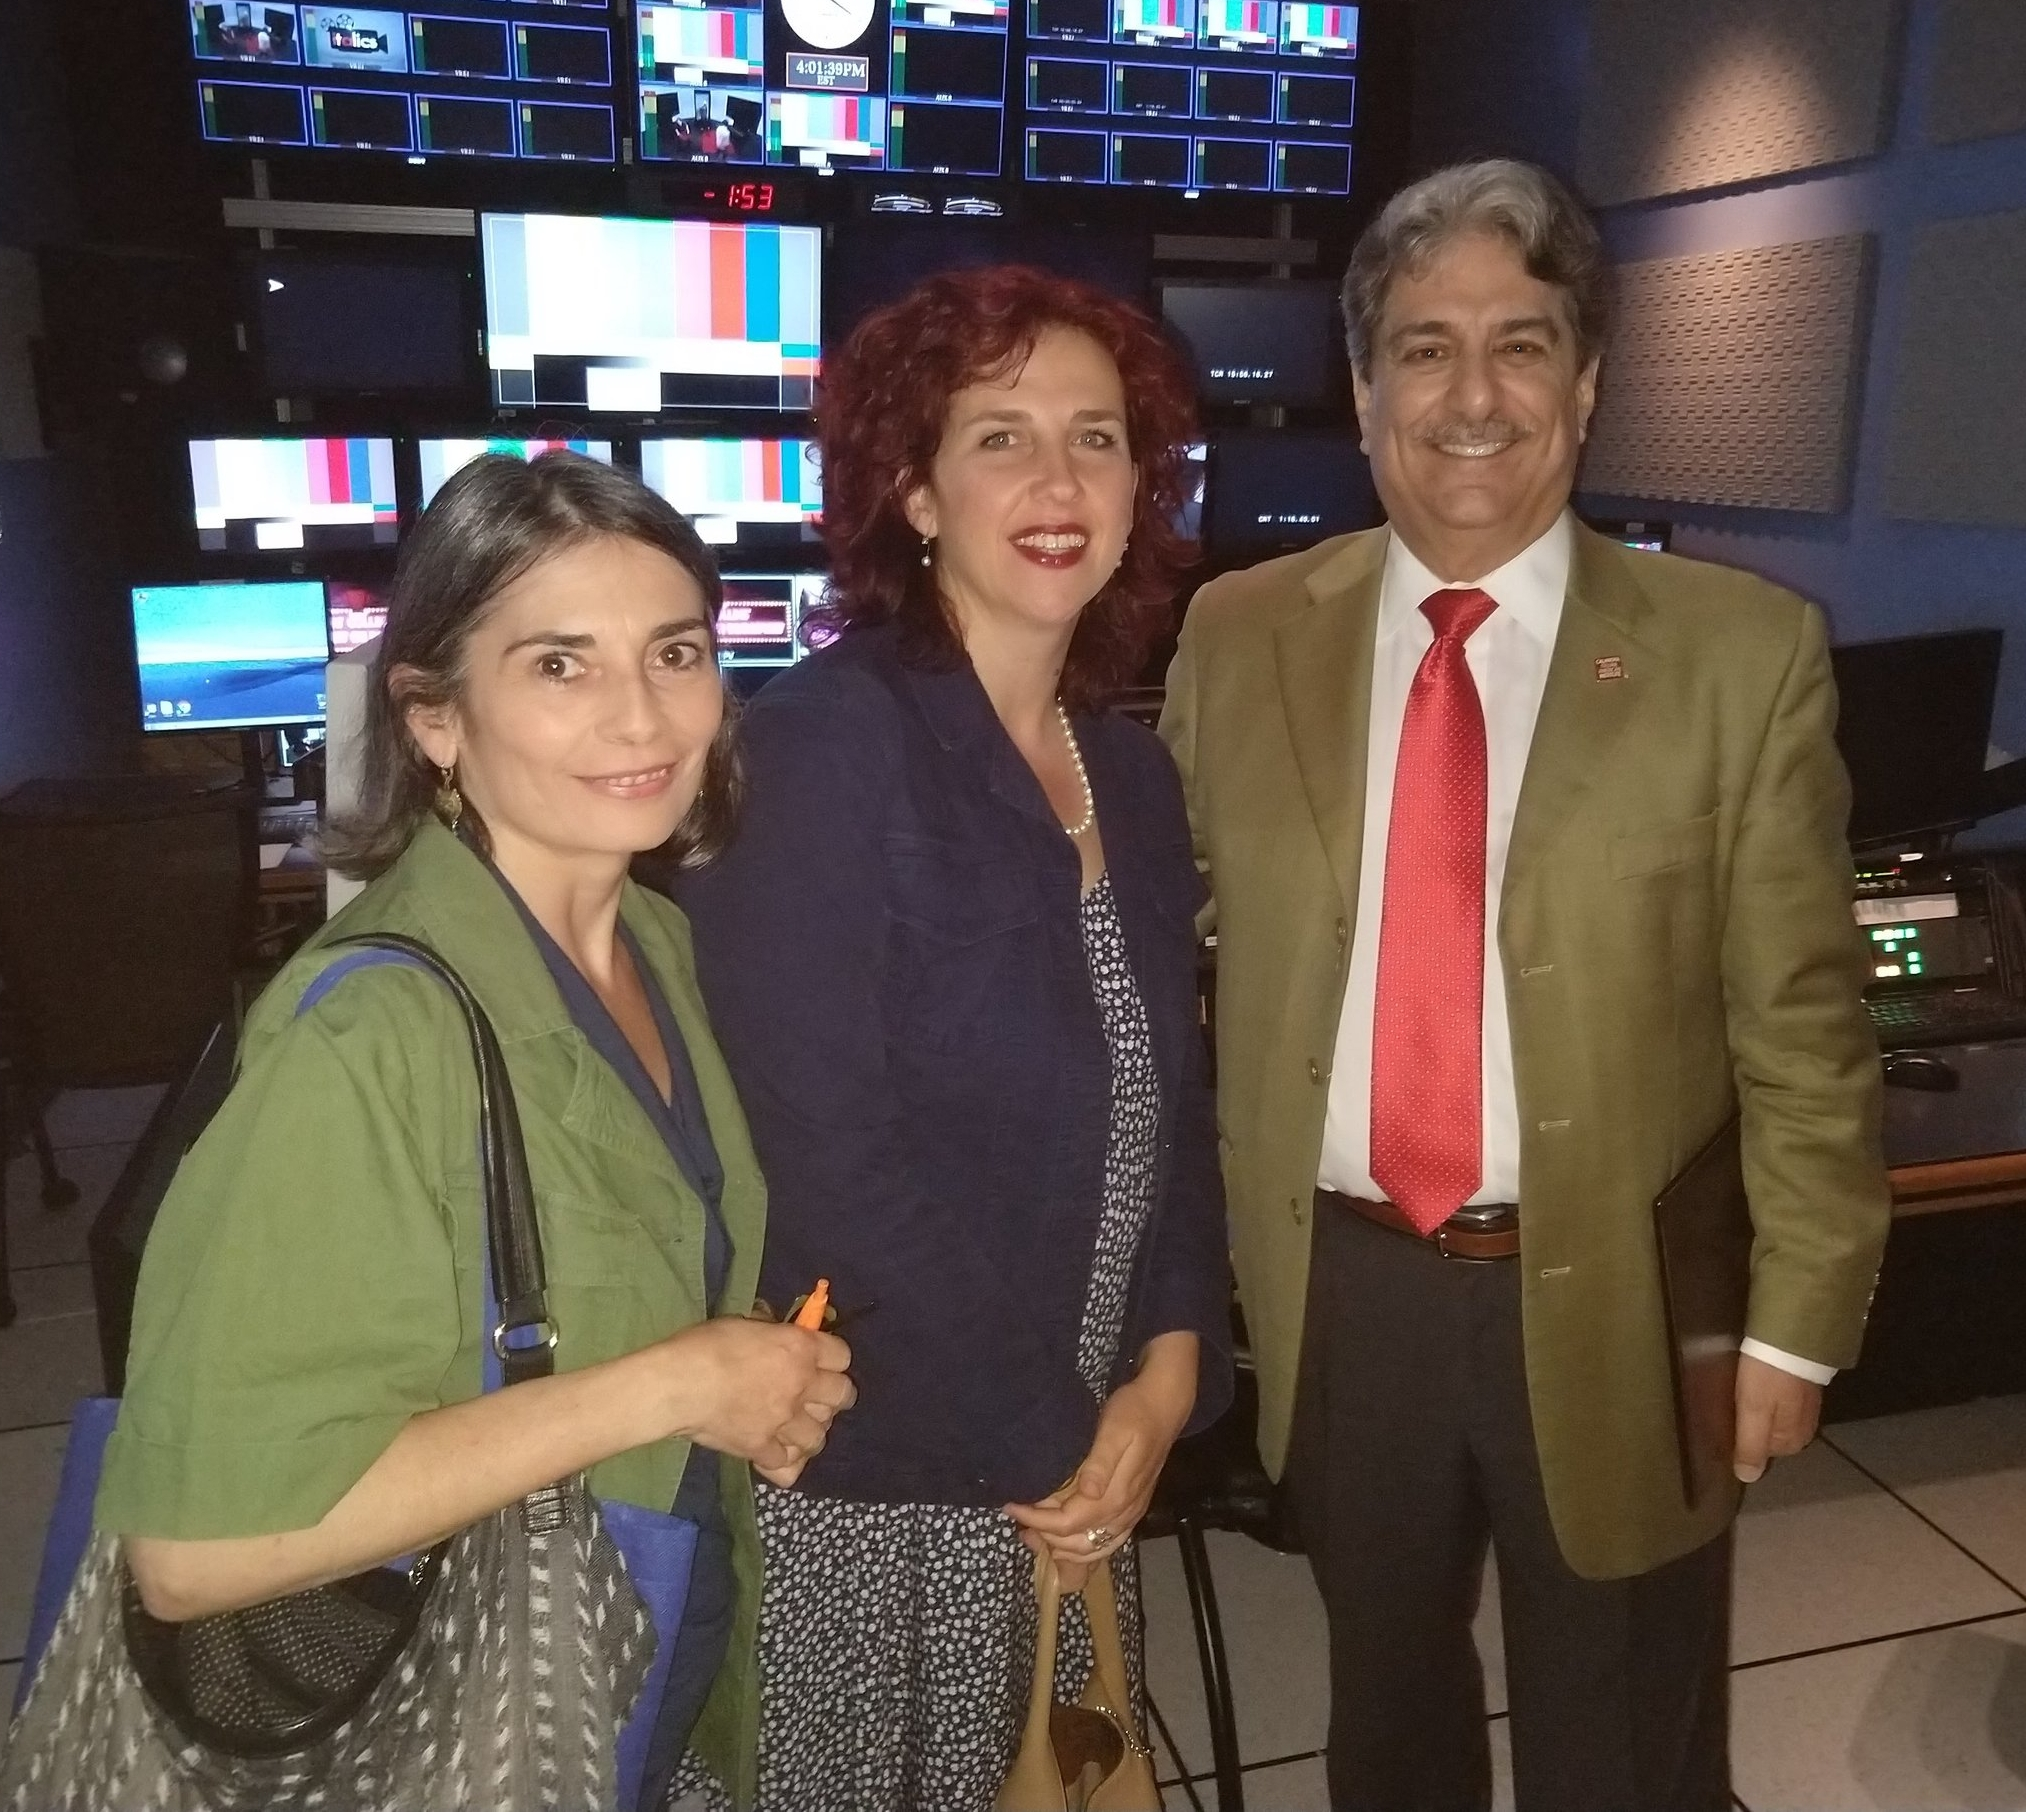 "Stefania & Benedetta with Anthony Tamburri, after the interview for CUNY TV's show ""Italics"" - May 2018"